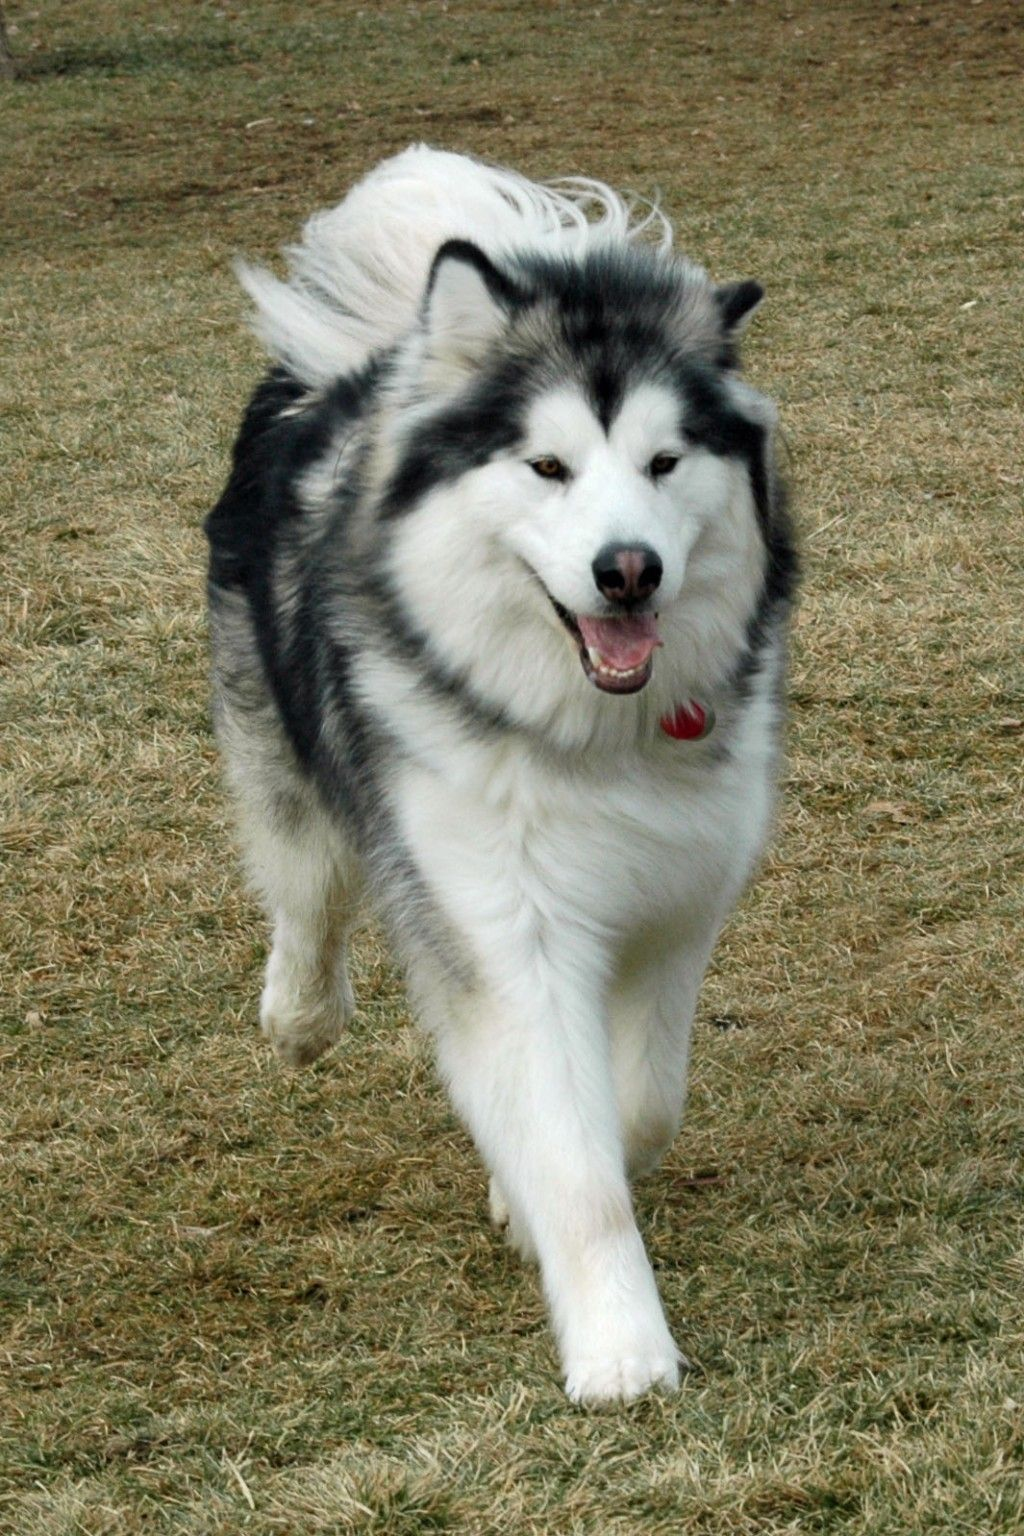 How To Groom An Alaskan Malamute Malamute Dog Giant Alaskan